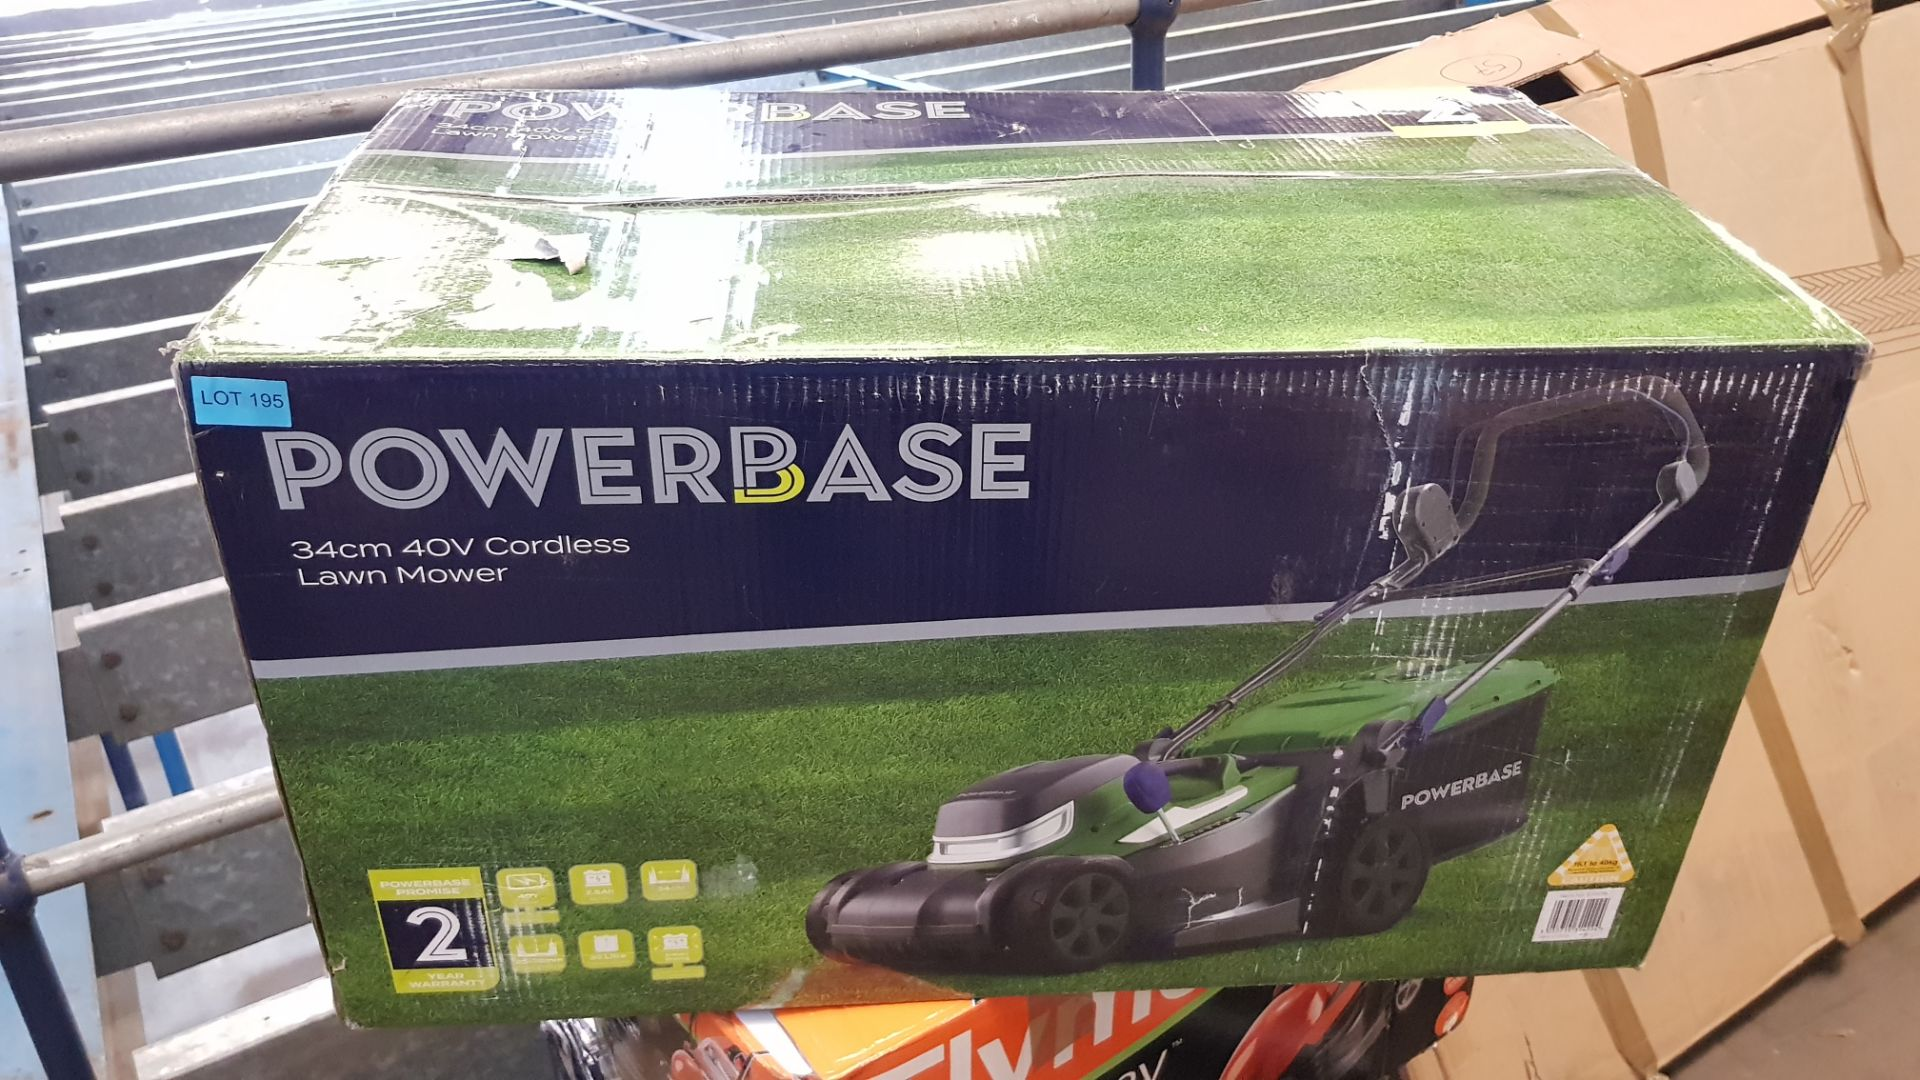 (P7) 1x Powerbase 34cm 40V Cordless Lawn Mower RRP £169. New, Sealed Item. - Image 3 of 3